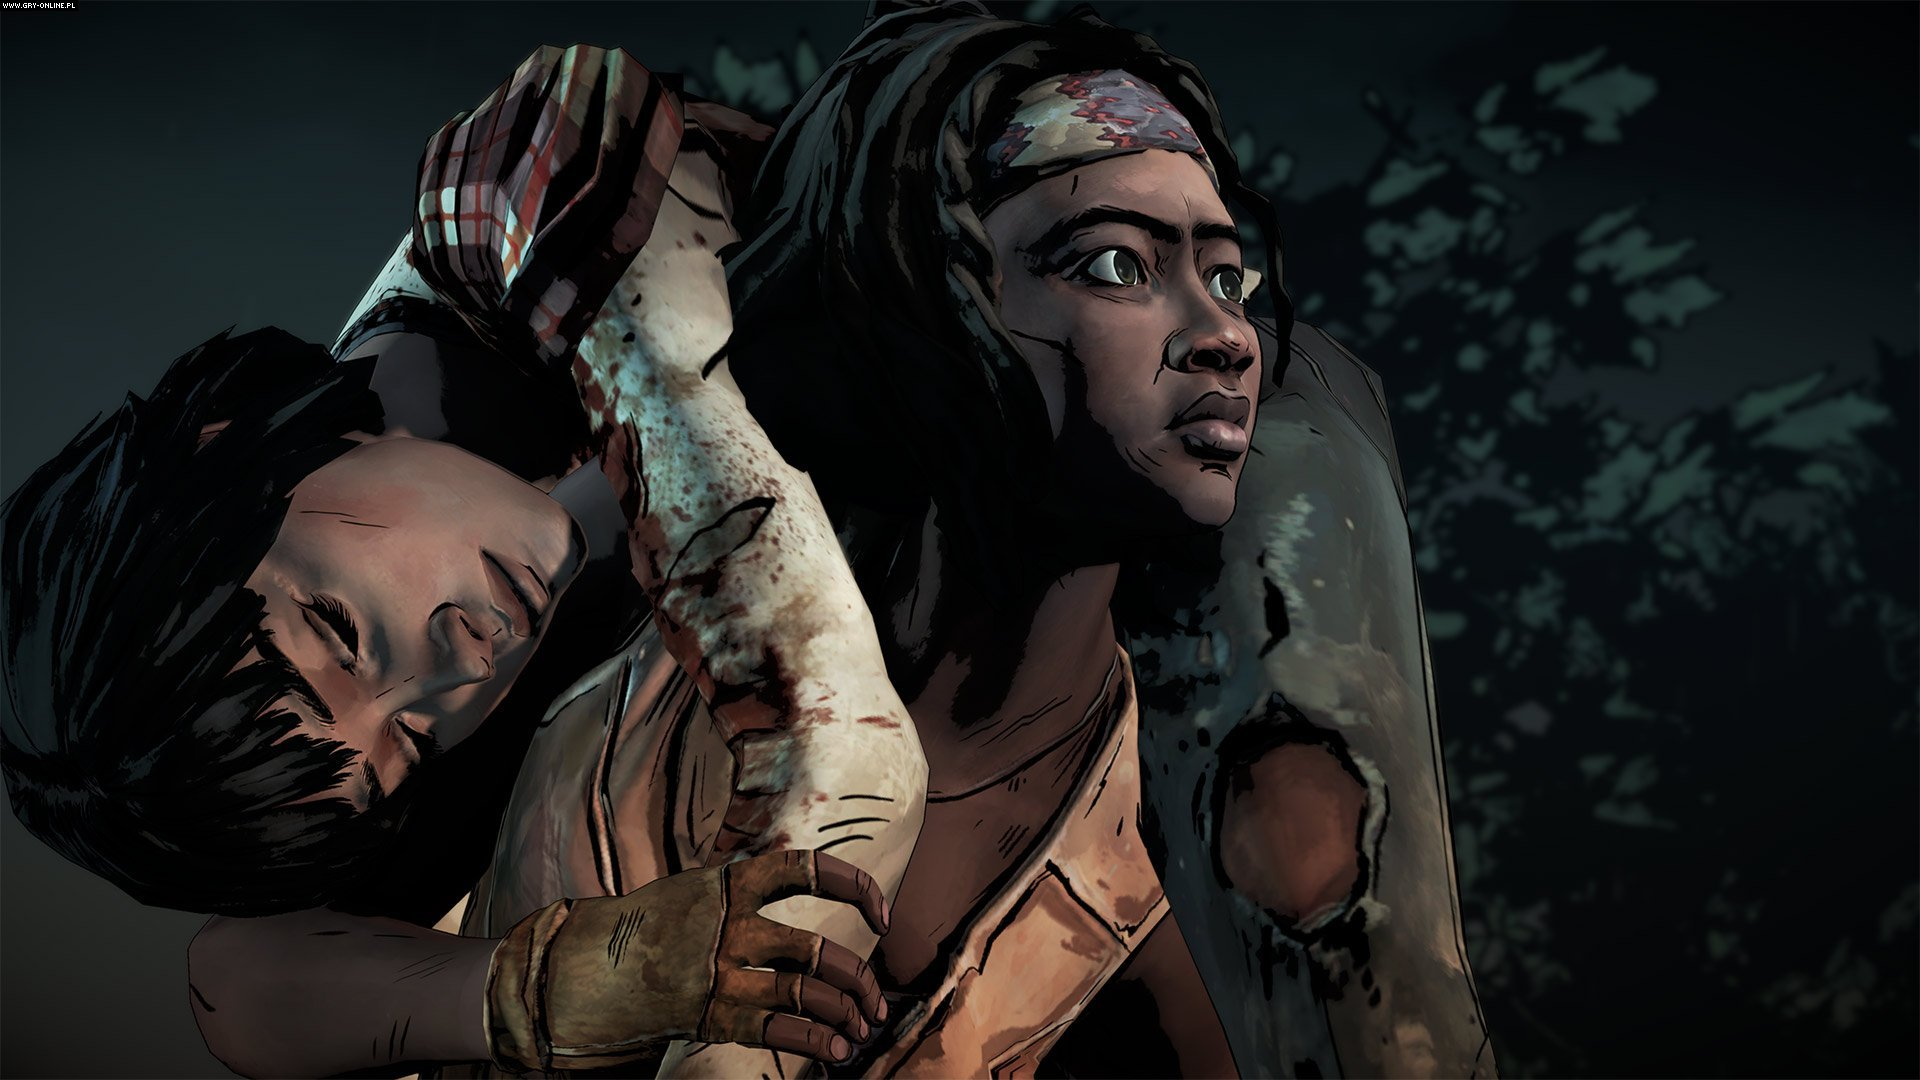 The Walking Dead: The Telltale Definitive Series PC, PS4, XONE Games Image 4/6, Telltale Games, Skybound Games